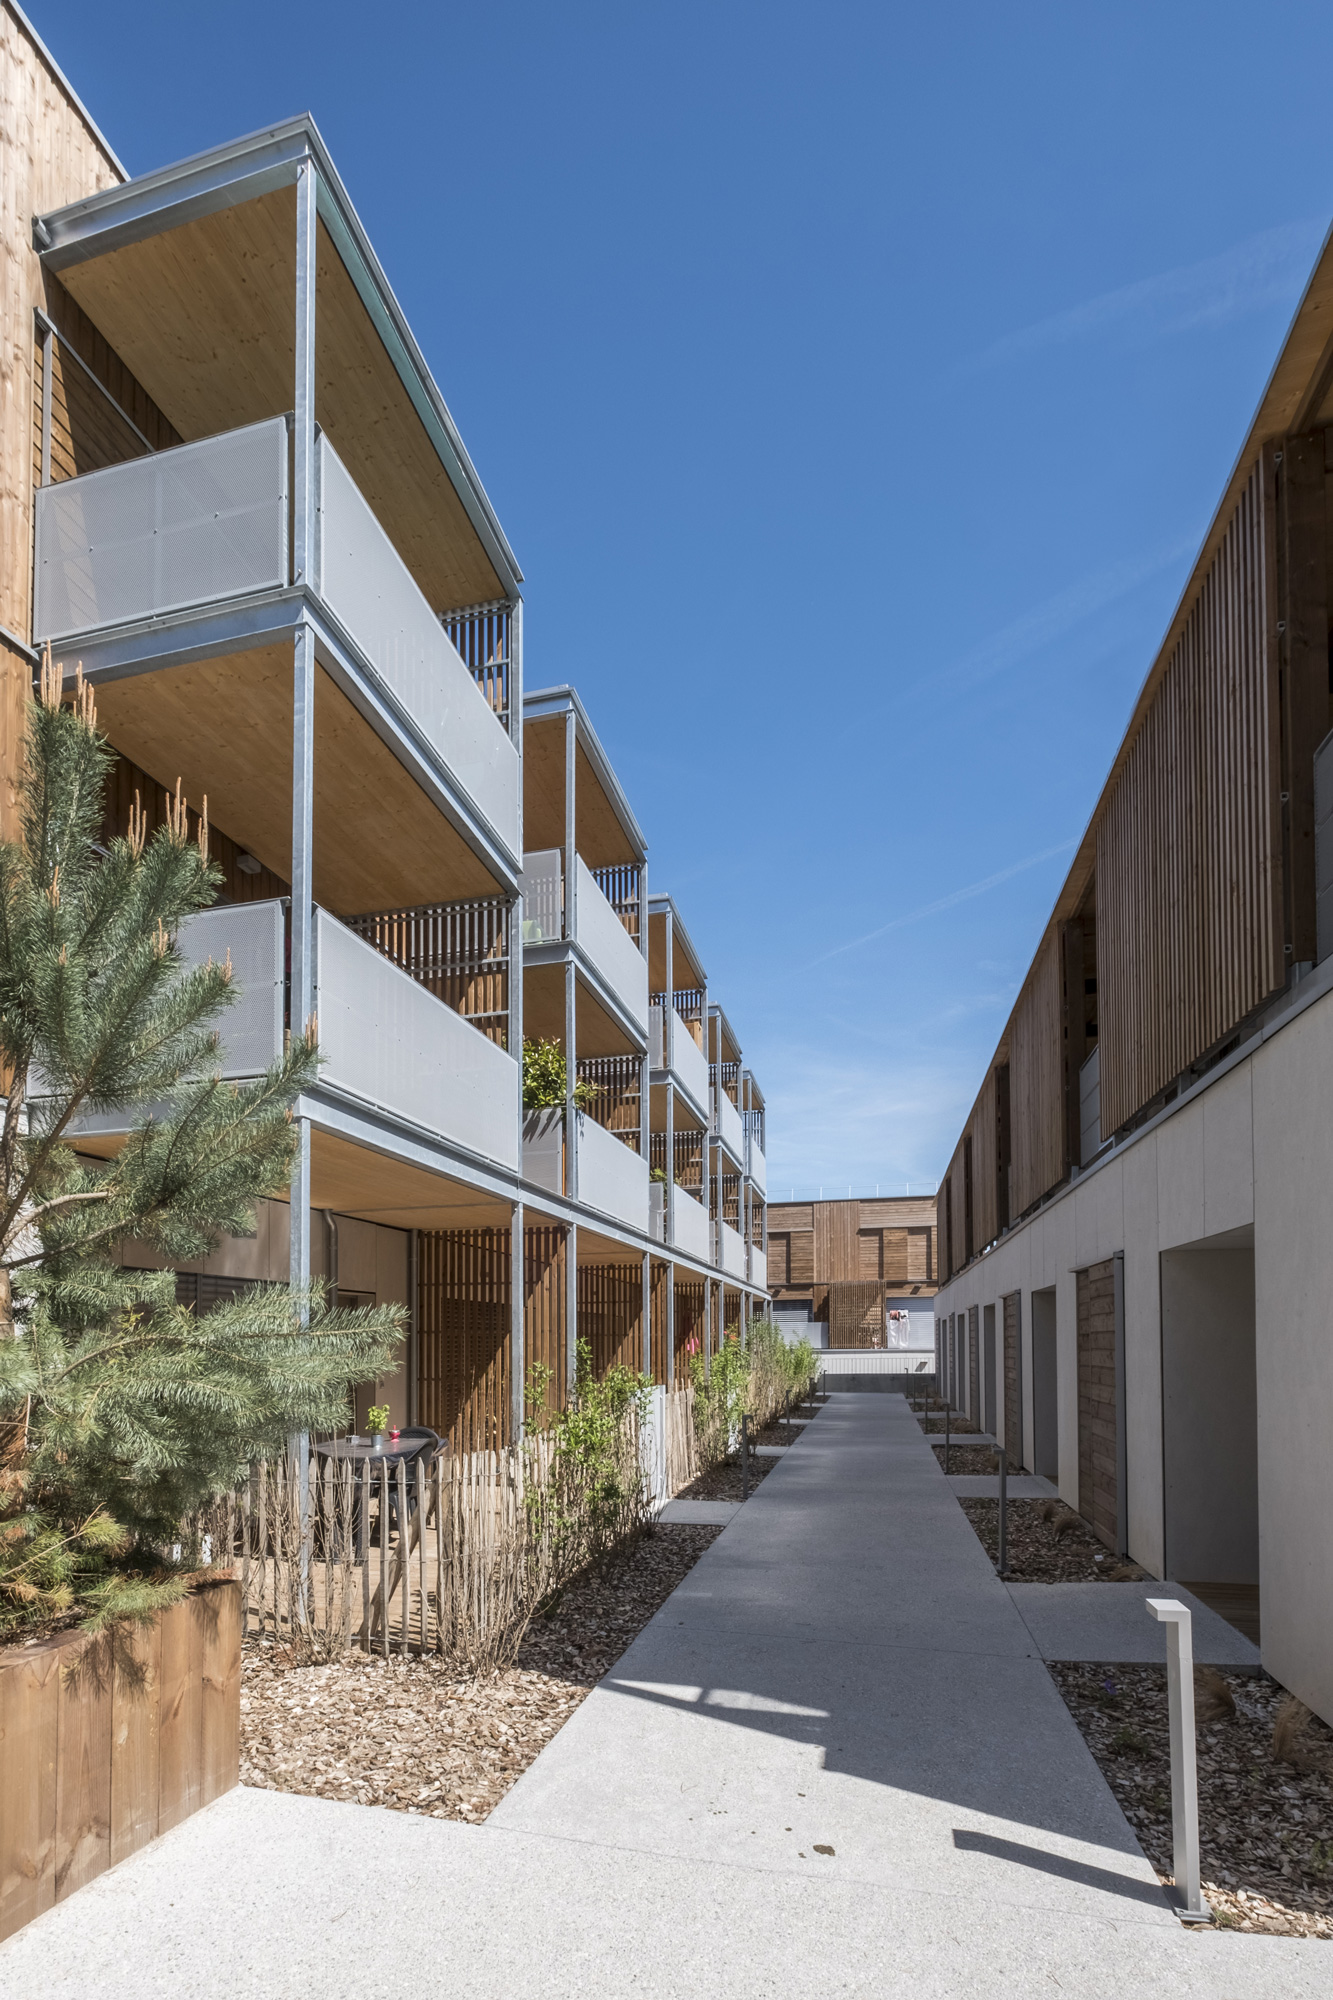 65 apartments in the Seyssins eco-neighborhood